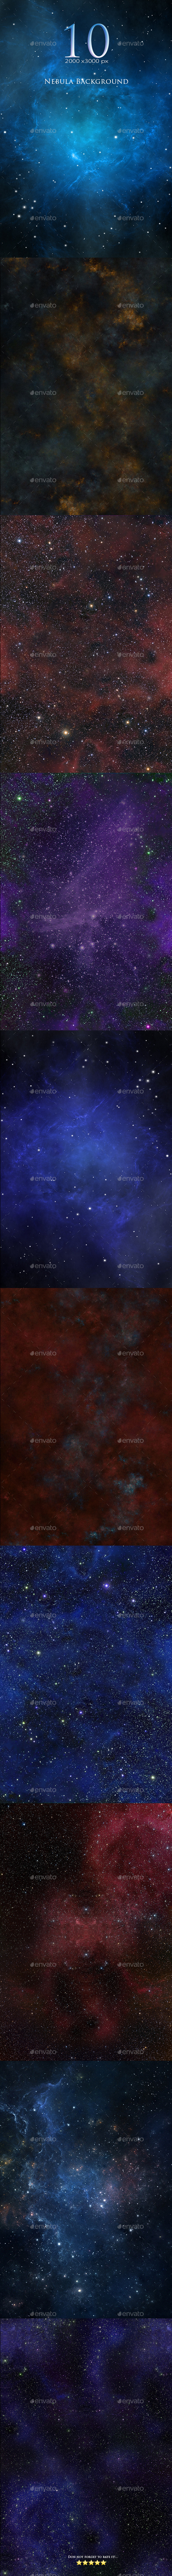 10 Nebula Backgrounds  - Abstract Backgrounds